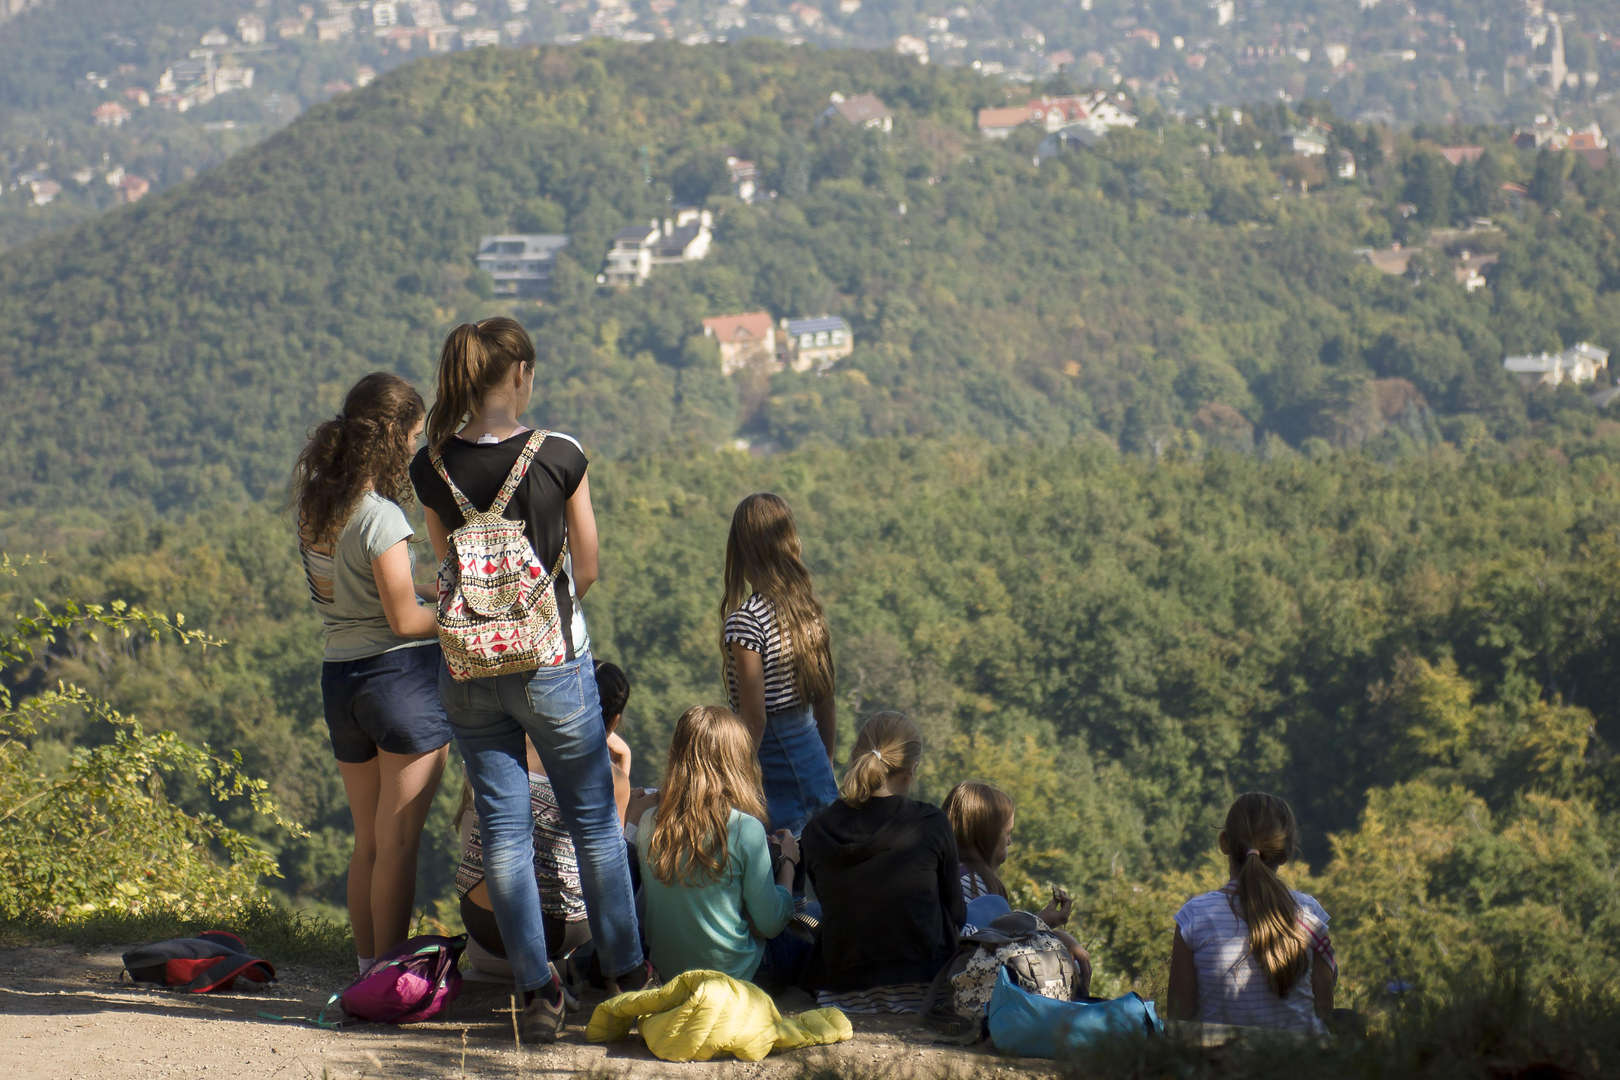 Students overlooking the mountainside